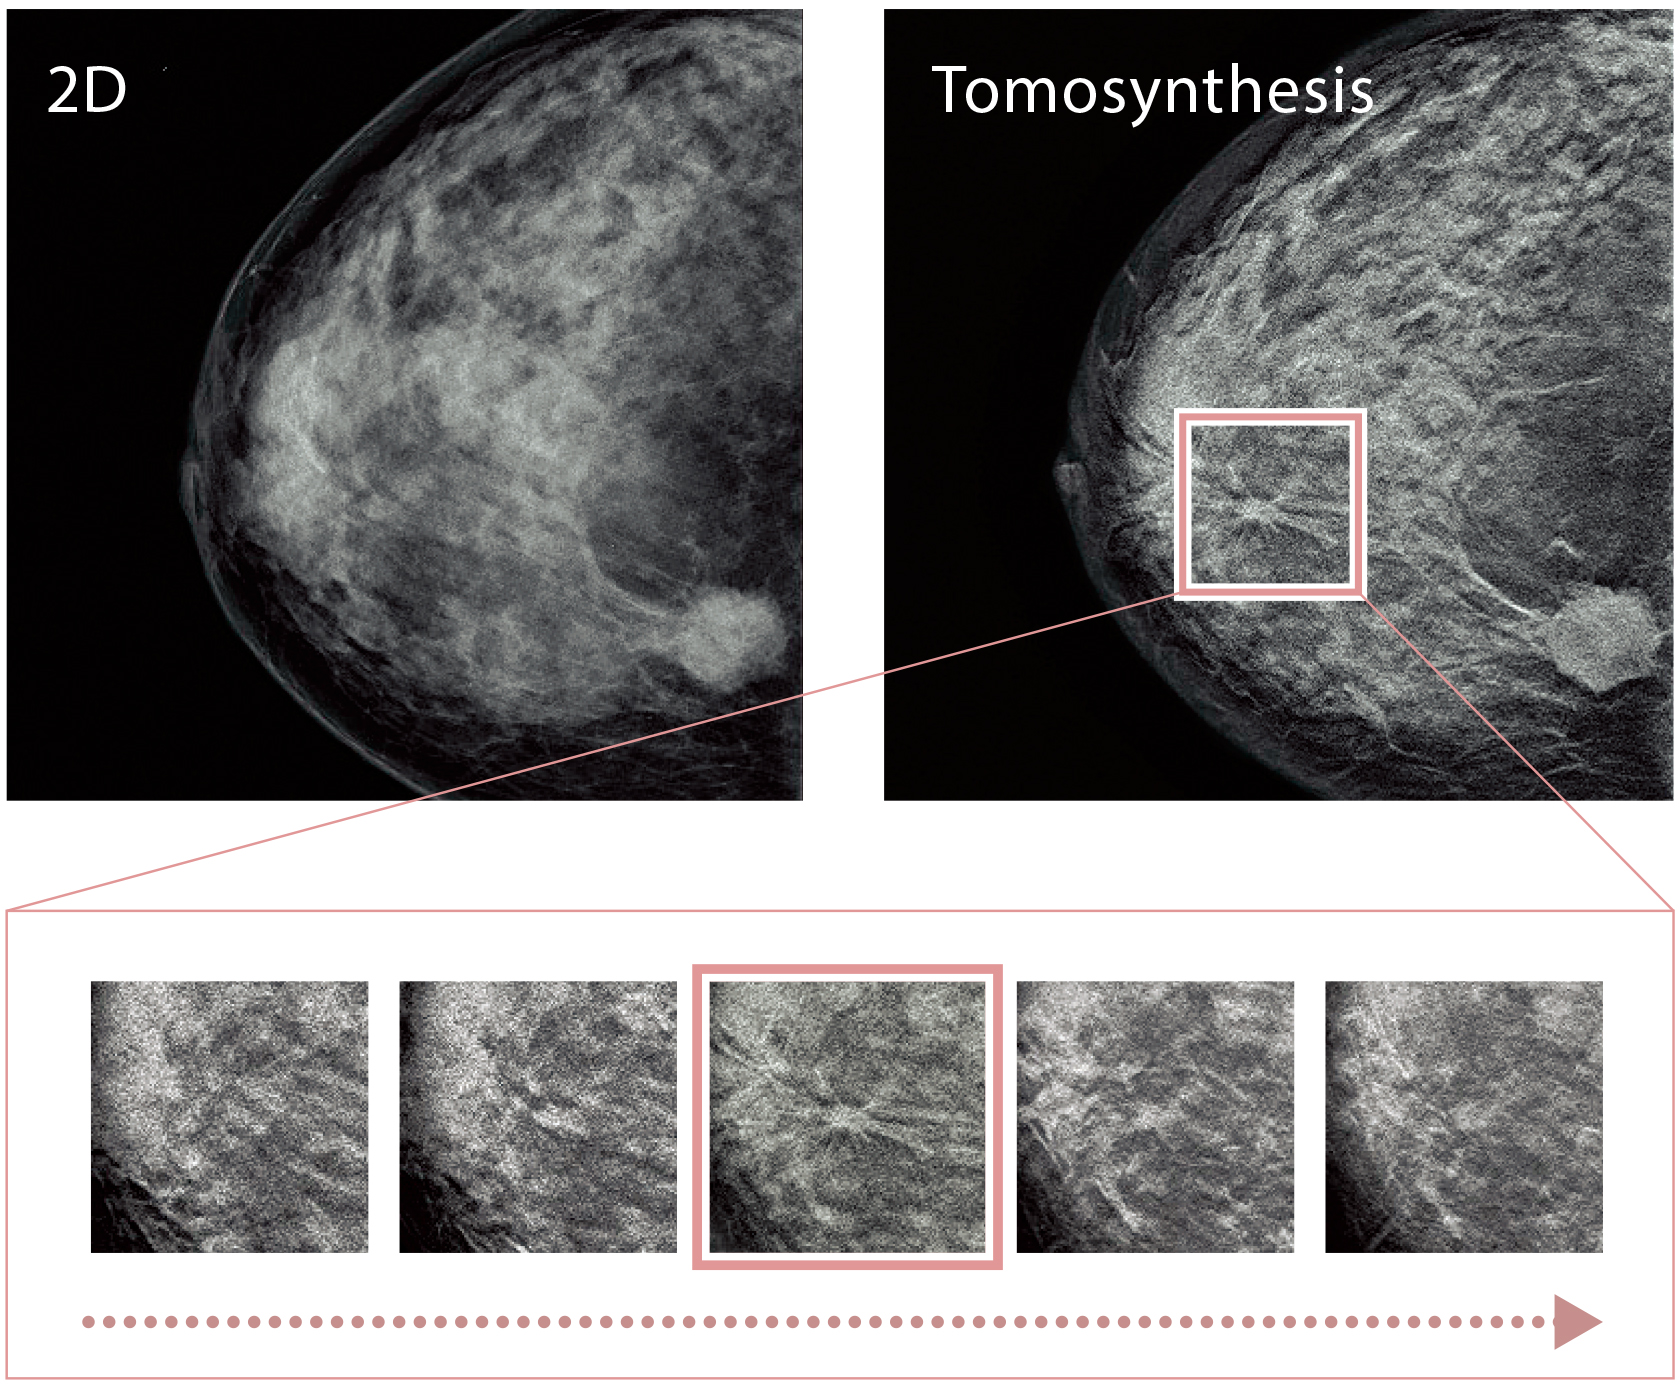 [image] Side by side of a 2d and Tomosynthesis X-rays with a pink bordered focus on the second image and zoomed in thumbnails